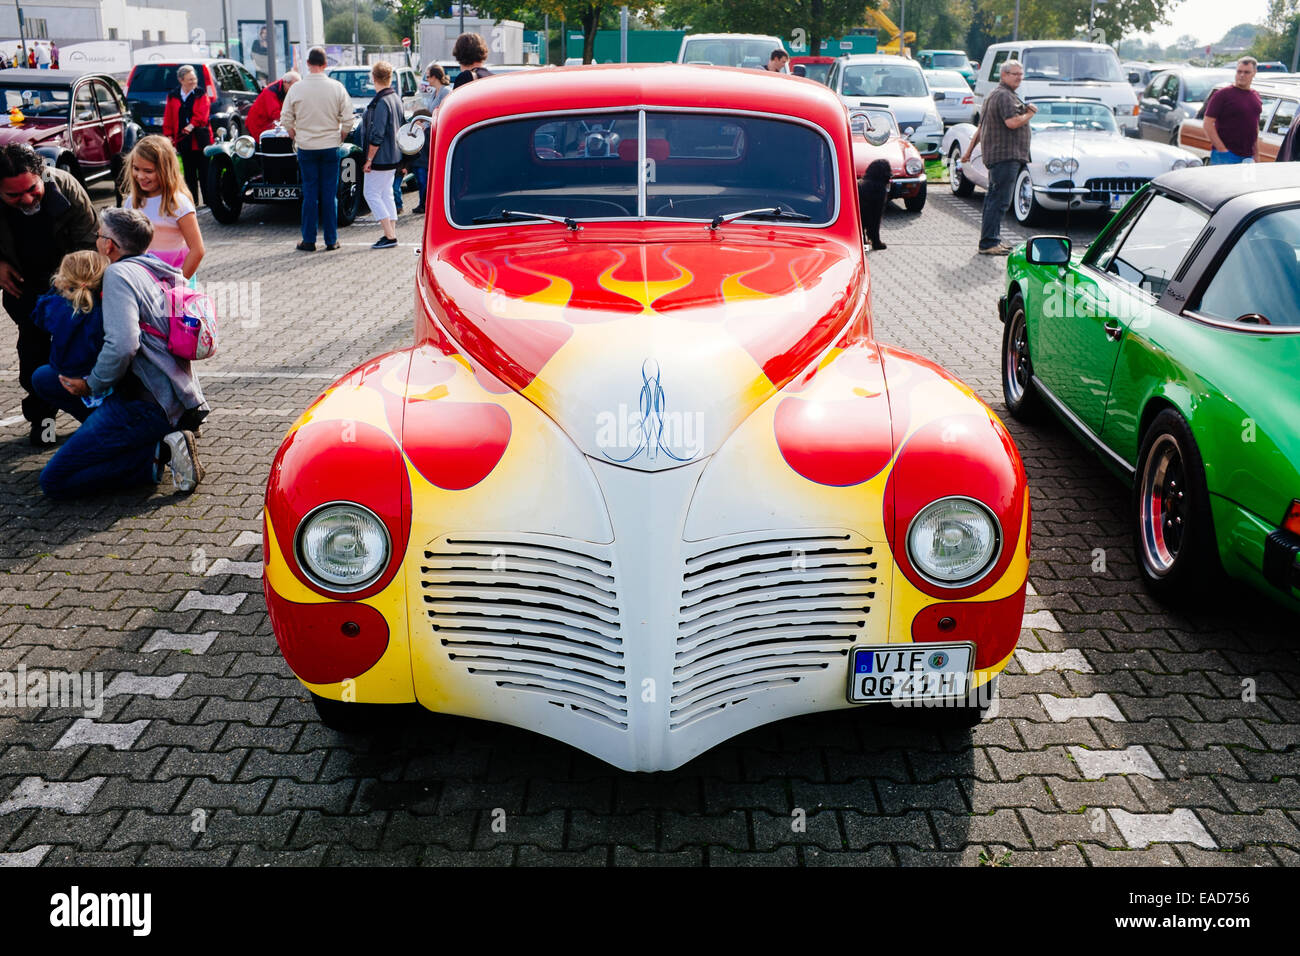 Old timer car during show in Monchengladbach Germany - Stock Image